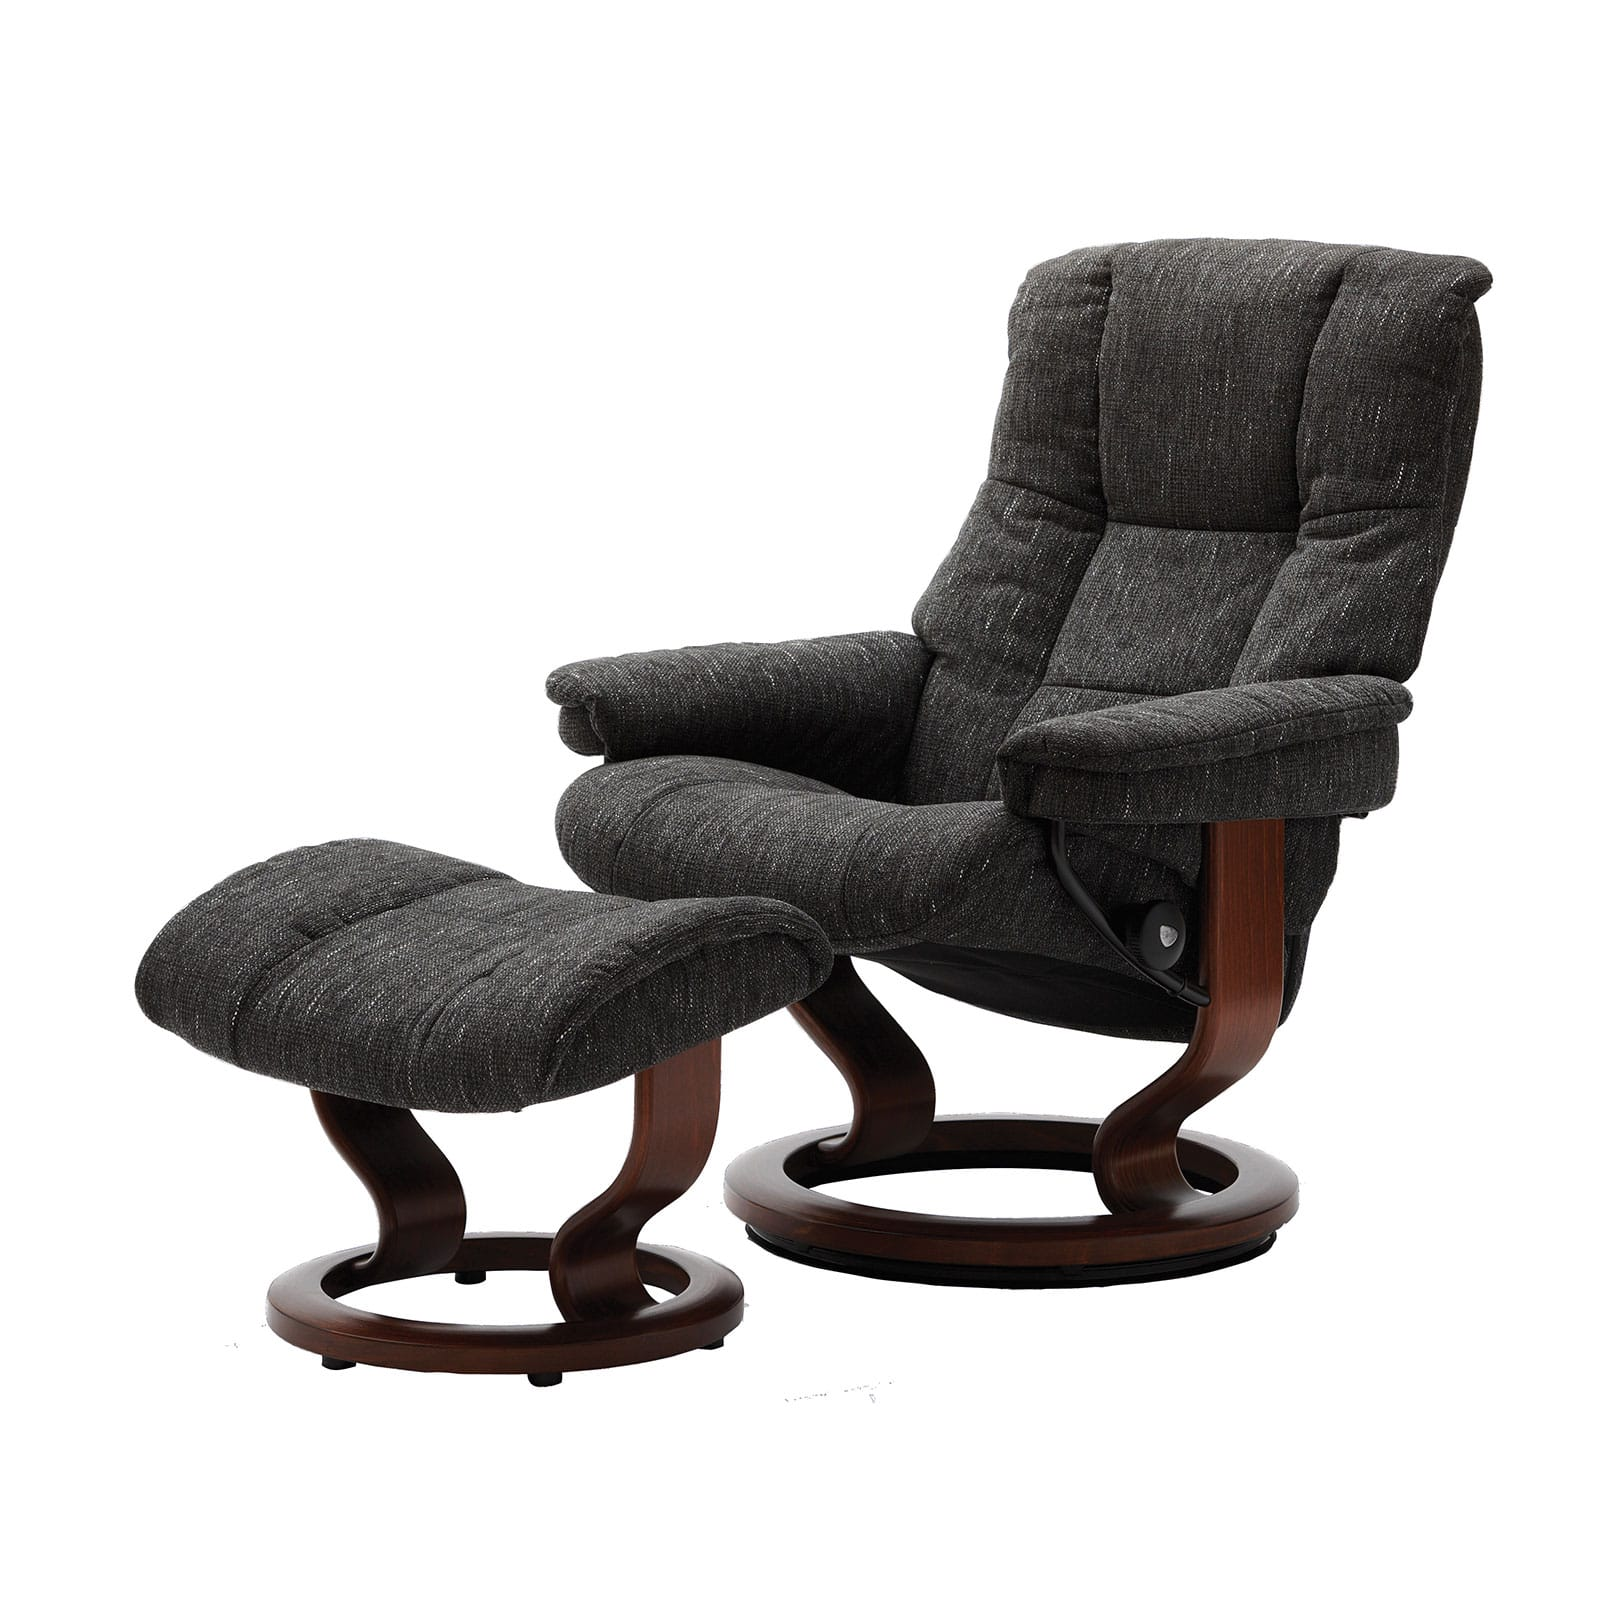 Fernsehsessel Stoff Stressless Sessel Mayfair Stoff Karma Grey Mit Hocker